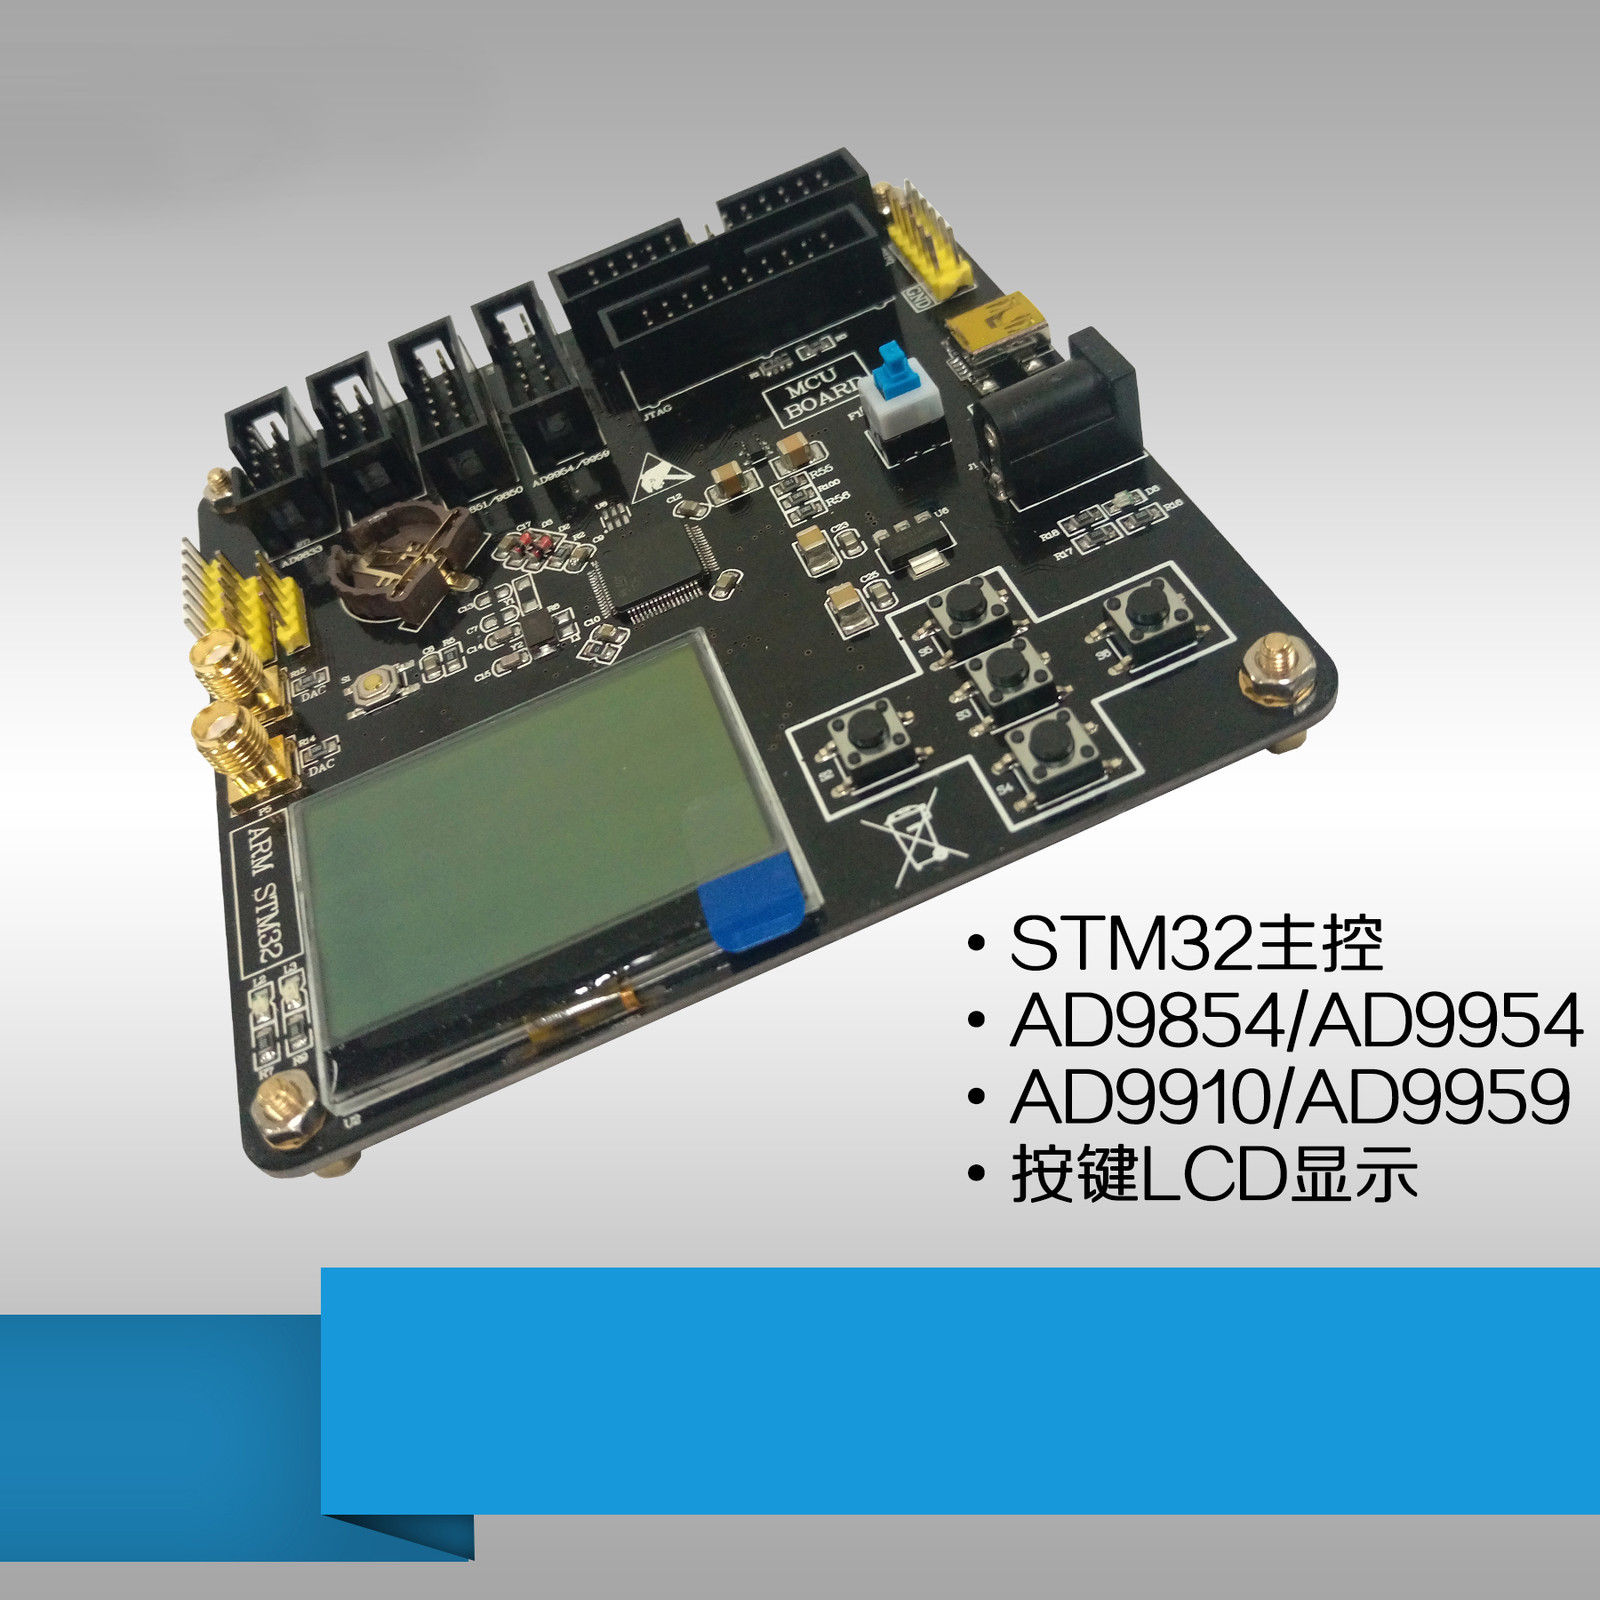 Ad9854 Full Function Version Dds Signal Generator Module Stm32tft Of Usb Wires Color Code Besides Ad9850 Schematic Diagram Lcd Display Driver Board Drive Ad9851 Ad9954 Ad9833 Ad9834